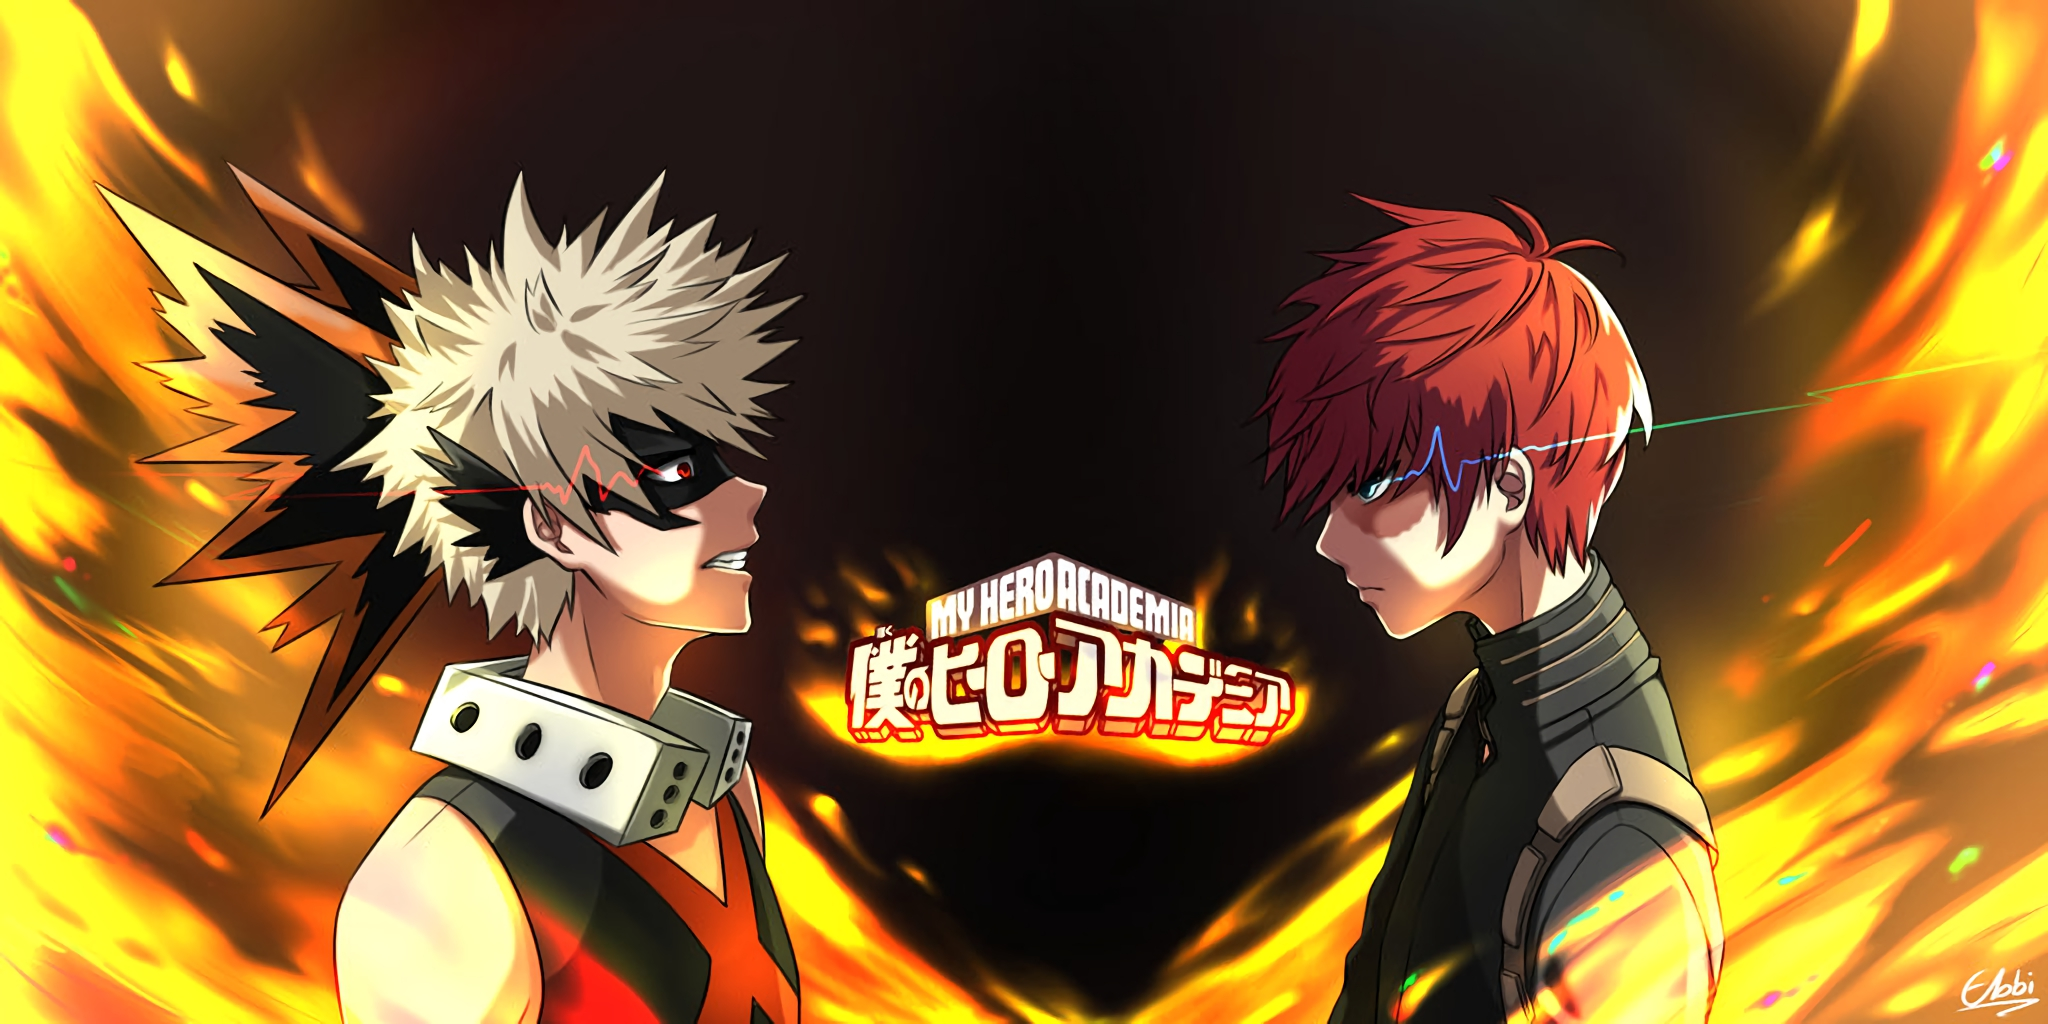 Become a hero with our 2807 my hero academia hd wallpapers and background images! My Hero Academia Wallpaper and Background Image   2048x1024